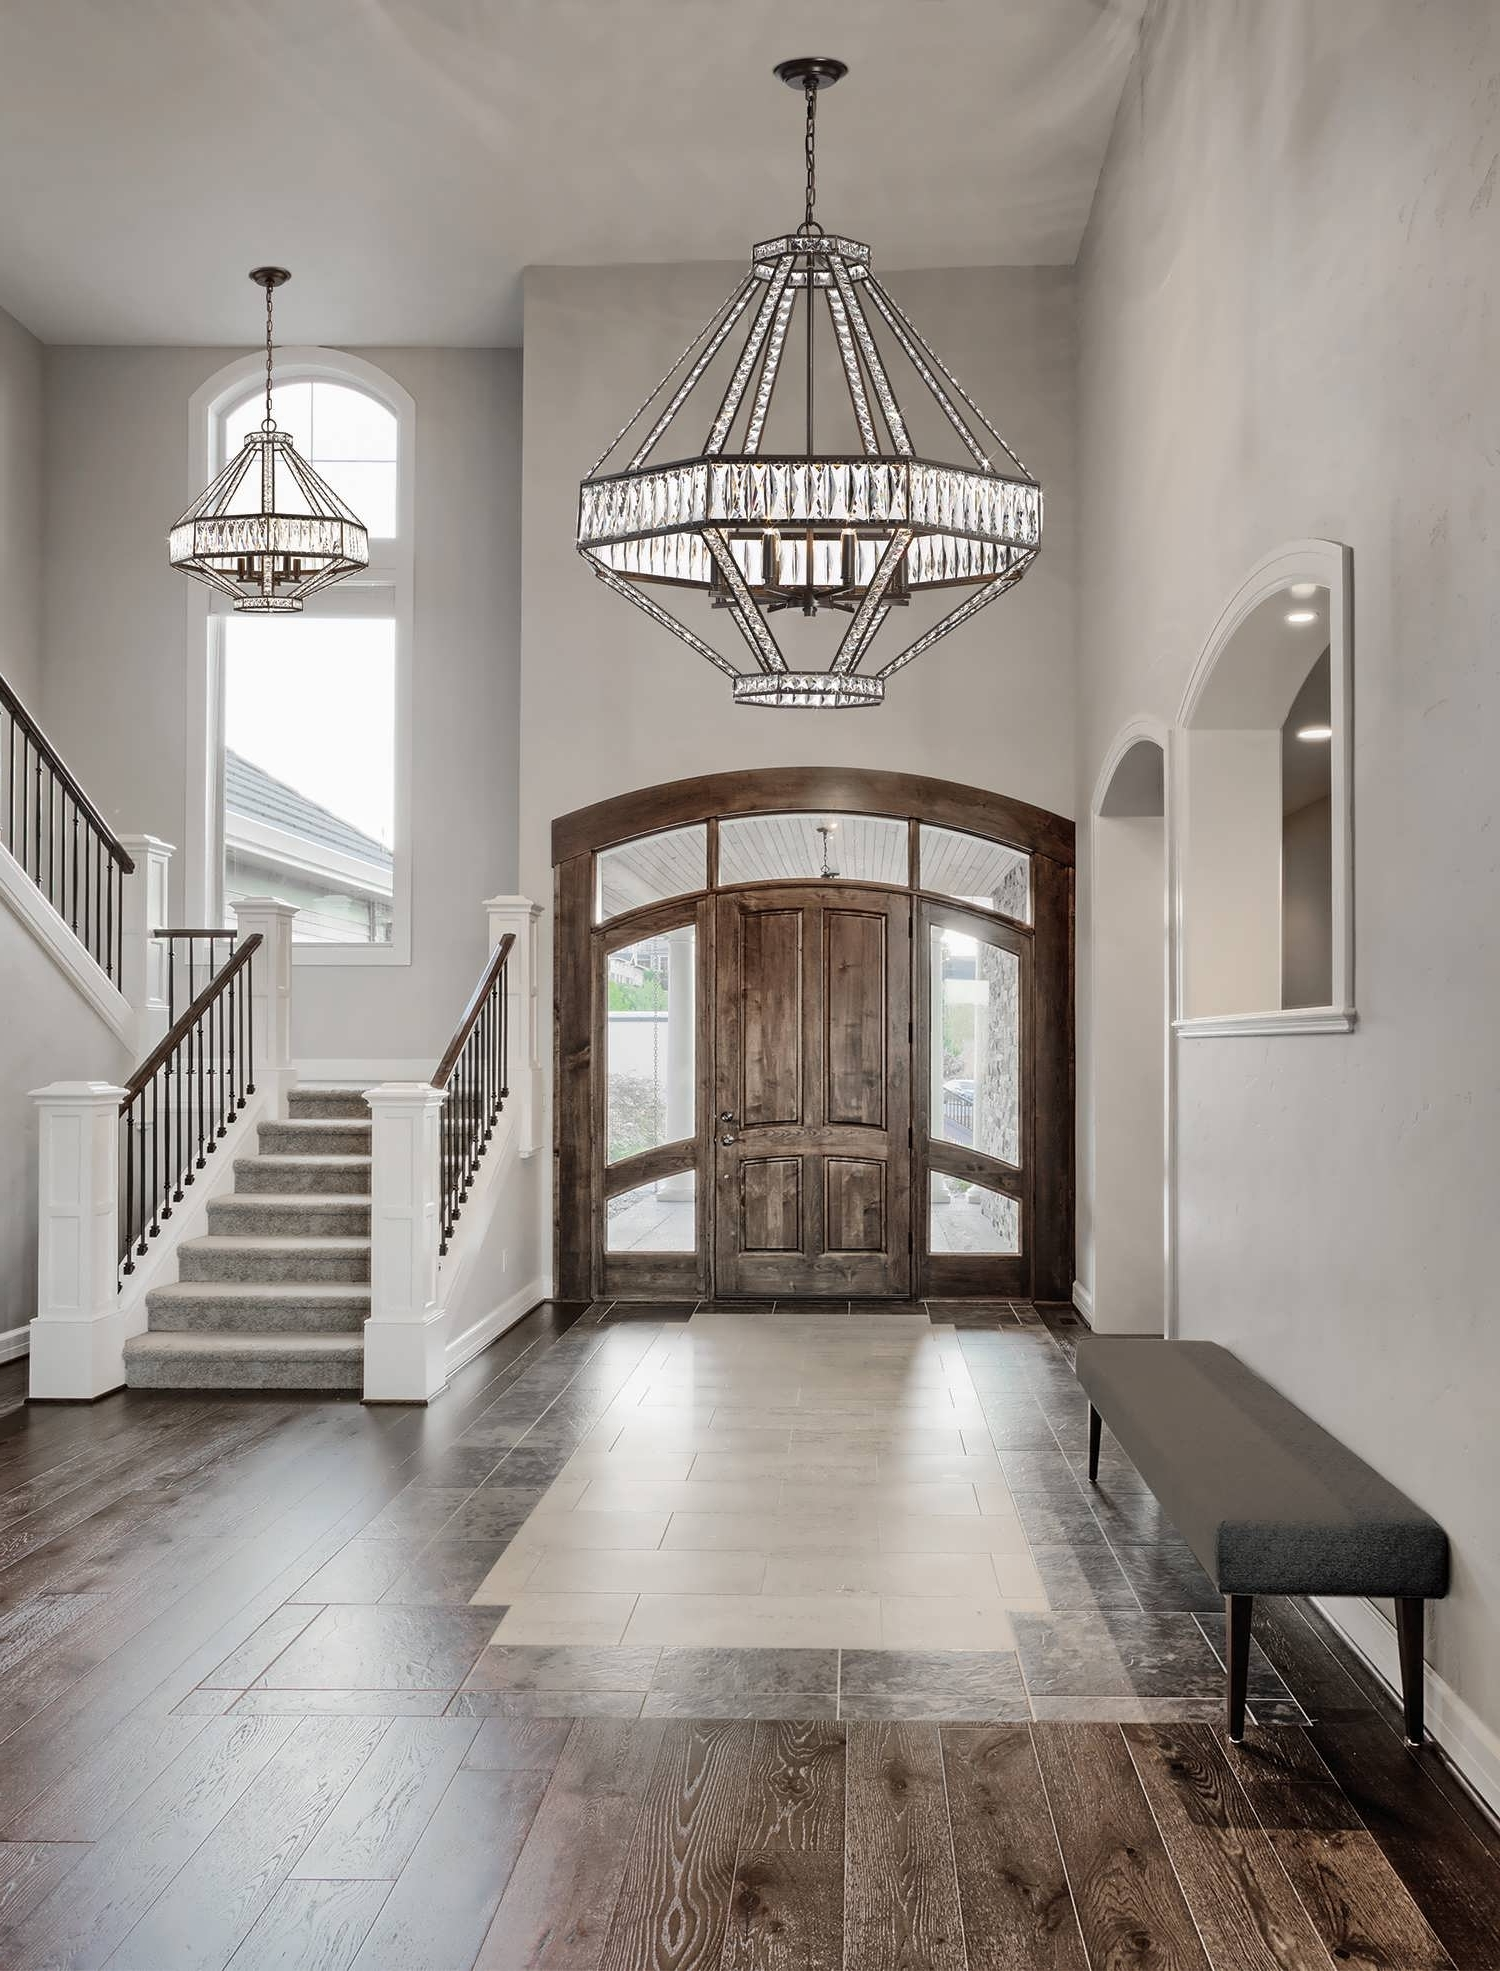 2019 Outdoor Foyer Lighting – Trgn #778E49Bf2521 For Outdoor Entrance Ceiling Lights (View 11 of 20)